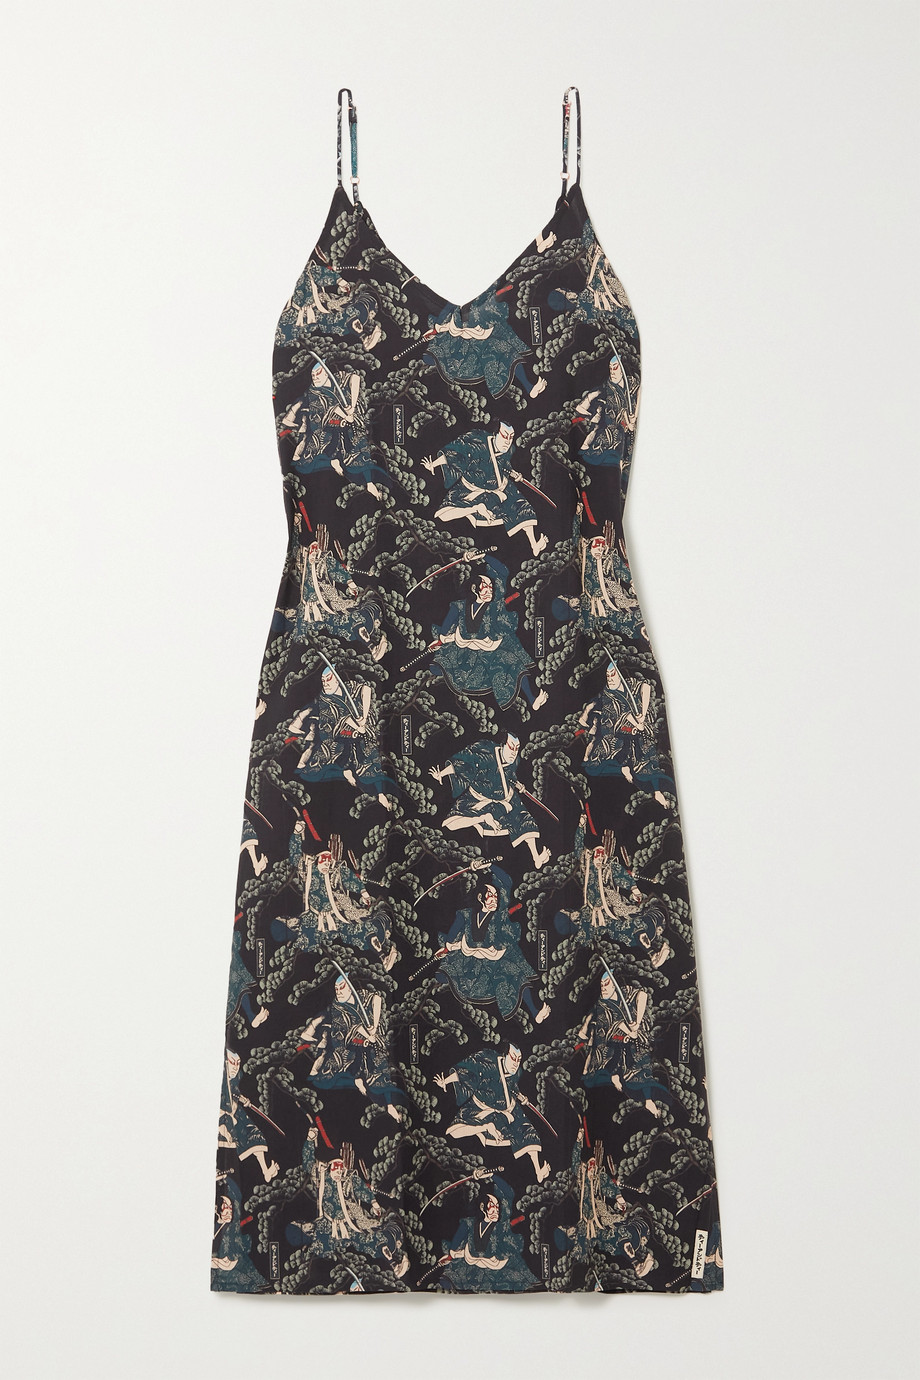 DESMOND & DEMPSEY + Rie Takeda printed organic cotton-voile nightdress